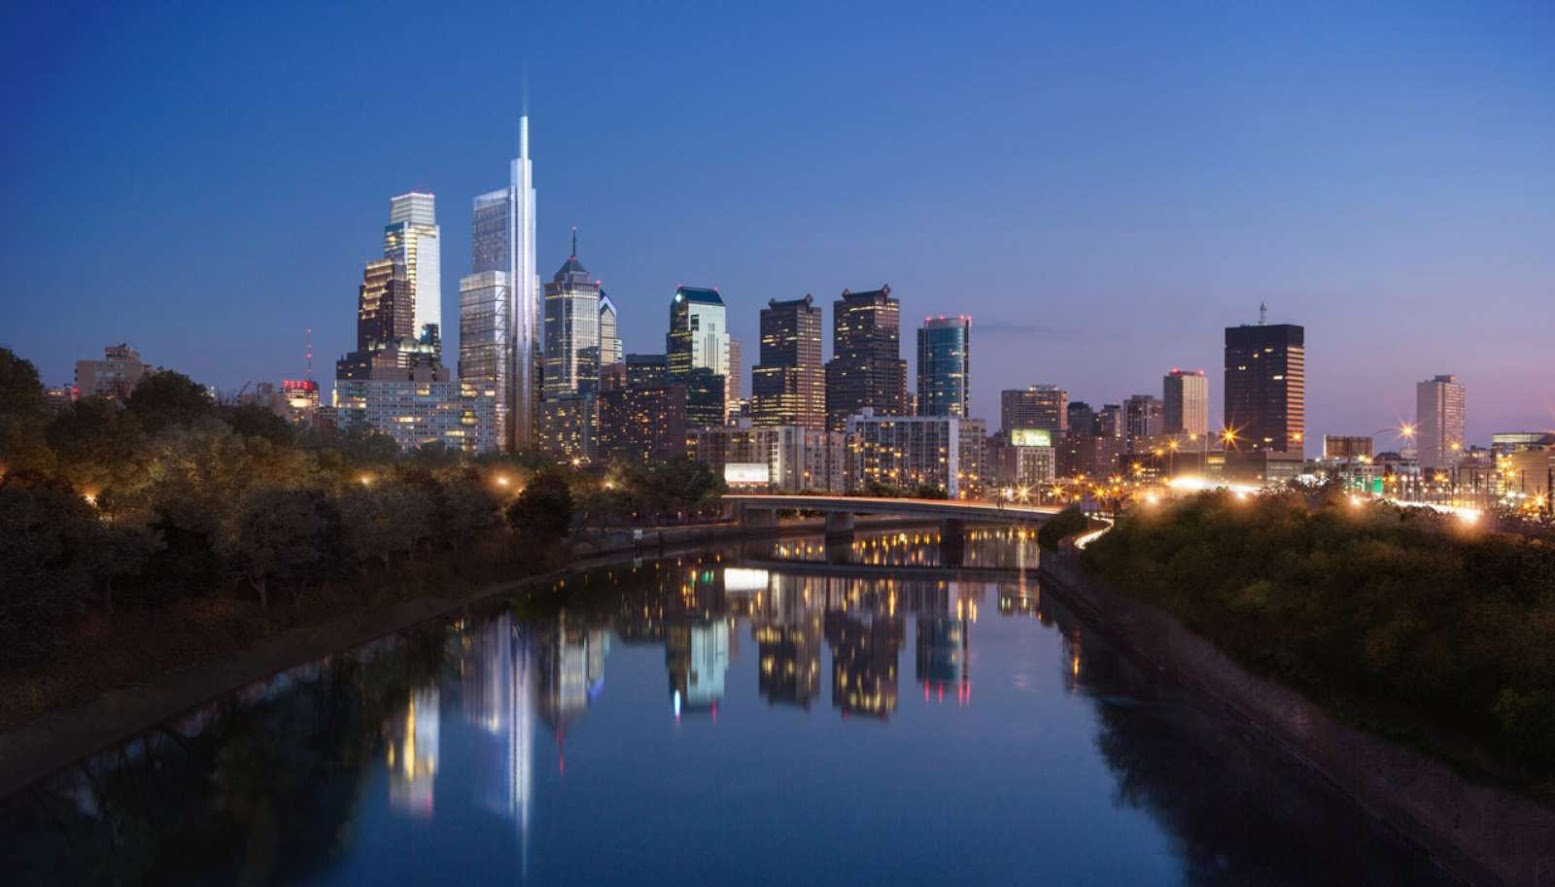 Philadelphia, USA: [COMCAST INNOVATION AND TECHNOLOGY CENTER BY FOSTER + PARTNERS]